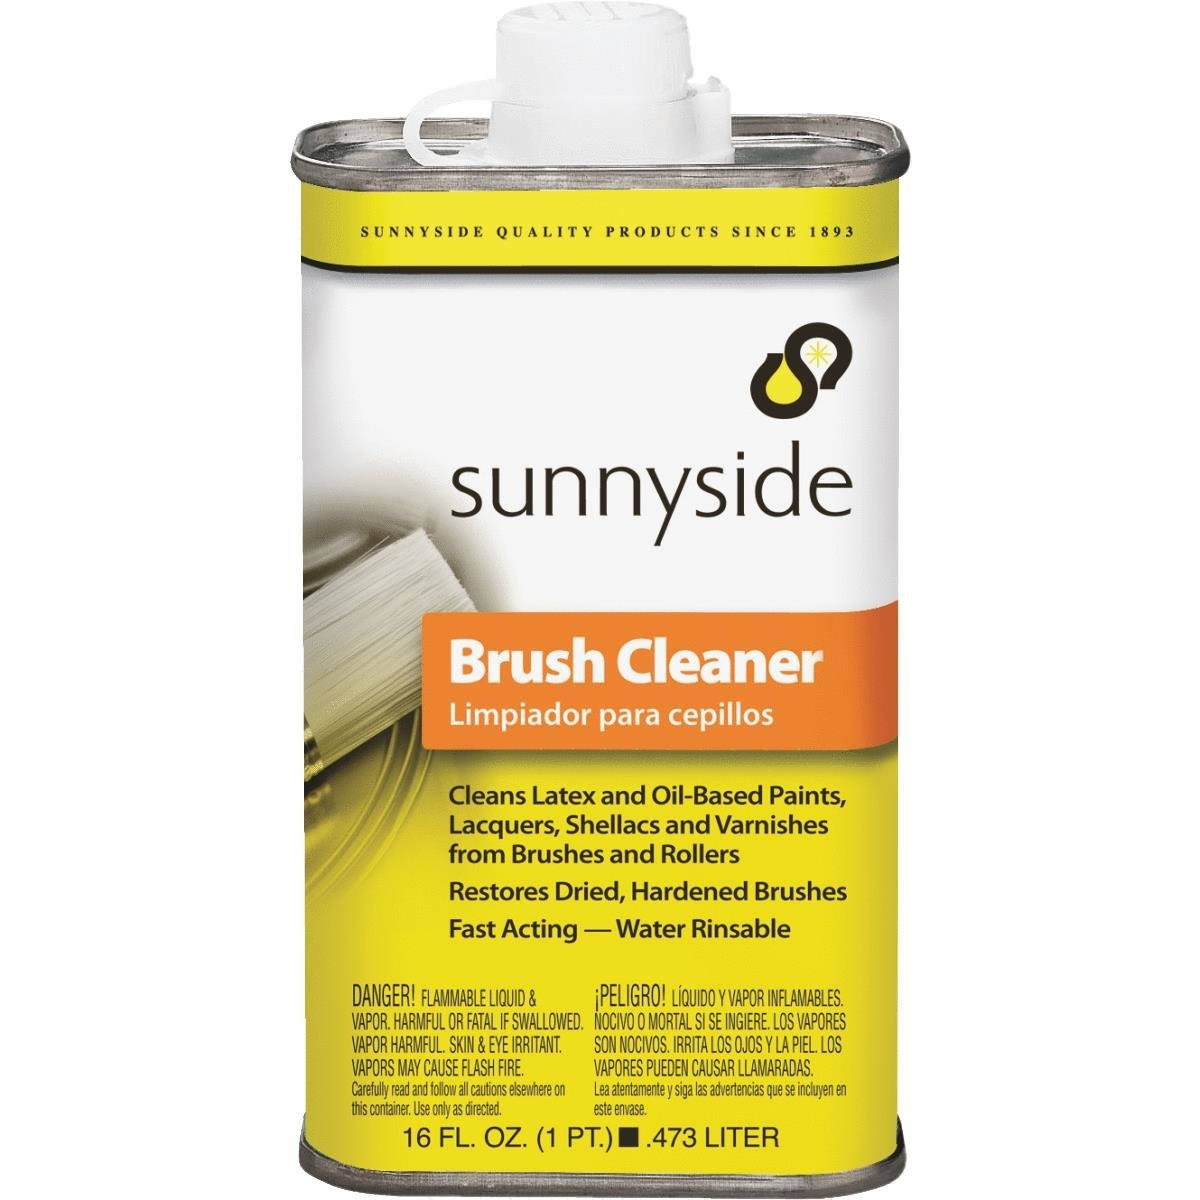 Sunnyside Brush Cleaner - 16 oz